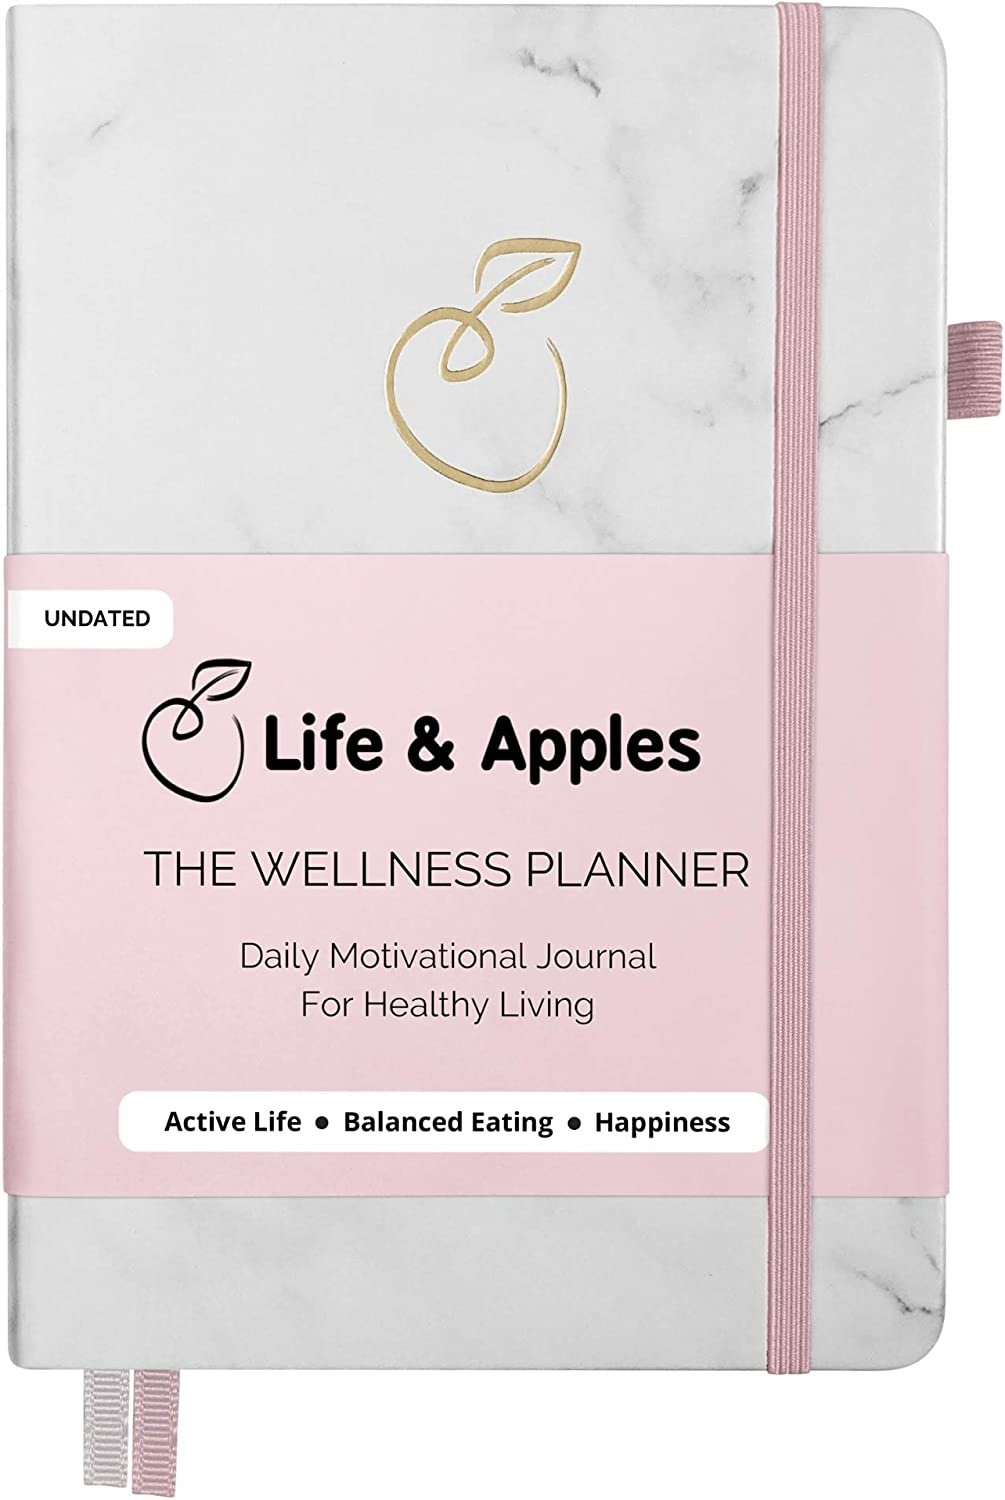 Life & Apples Wellness Planner - Food Journal and Fitness Diary with Daily Gratitude and Meal Planner for Healthy Living - Track Weight Loss Diet and Achieve Health Goals - Undated, Marble